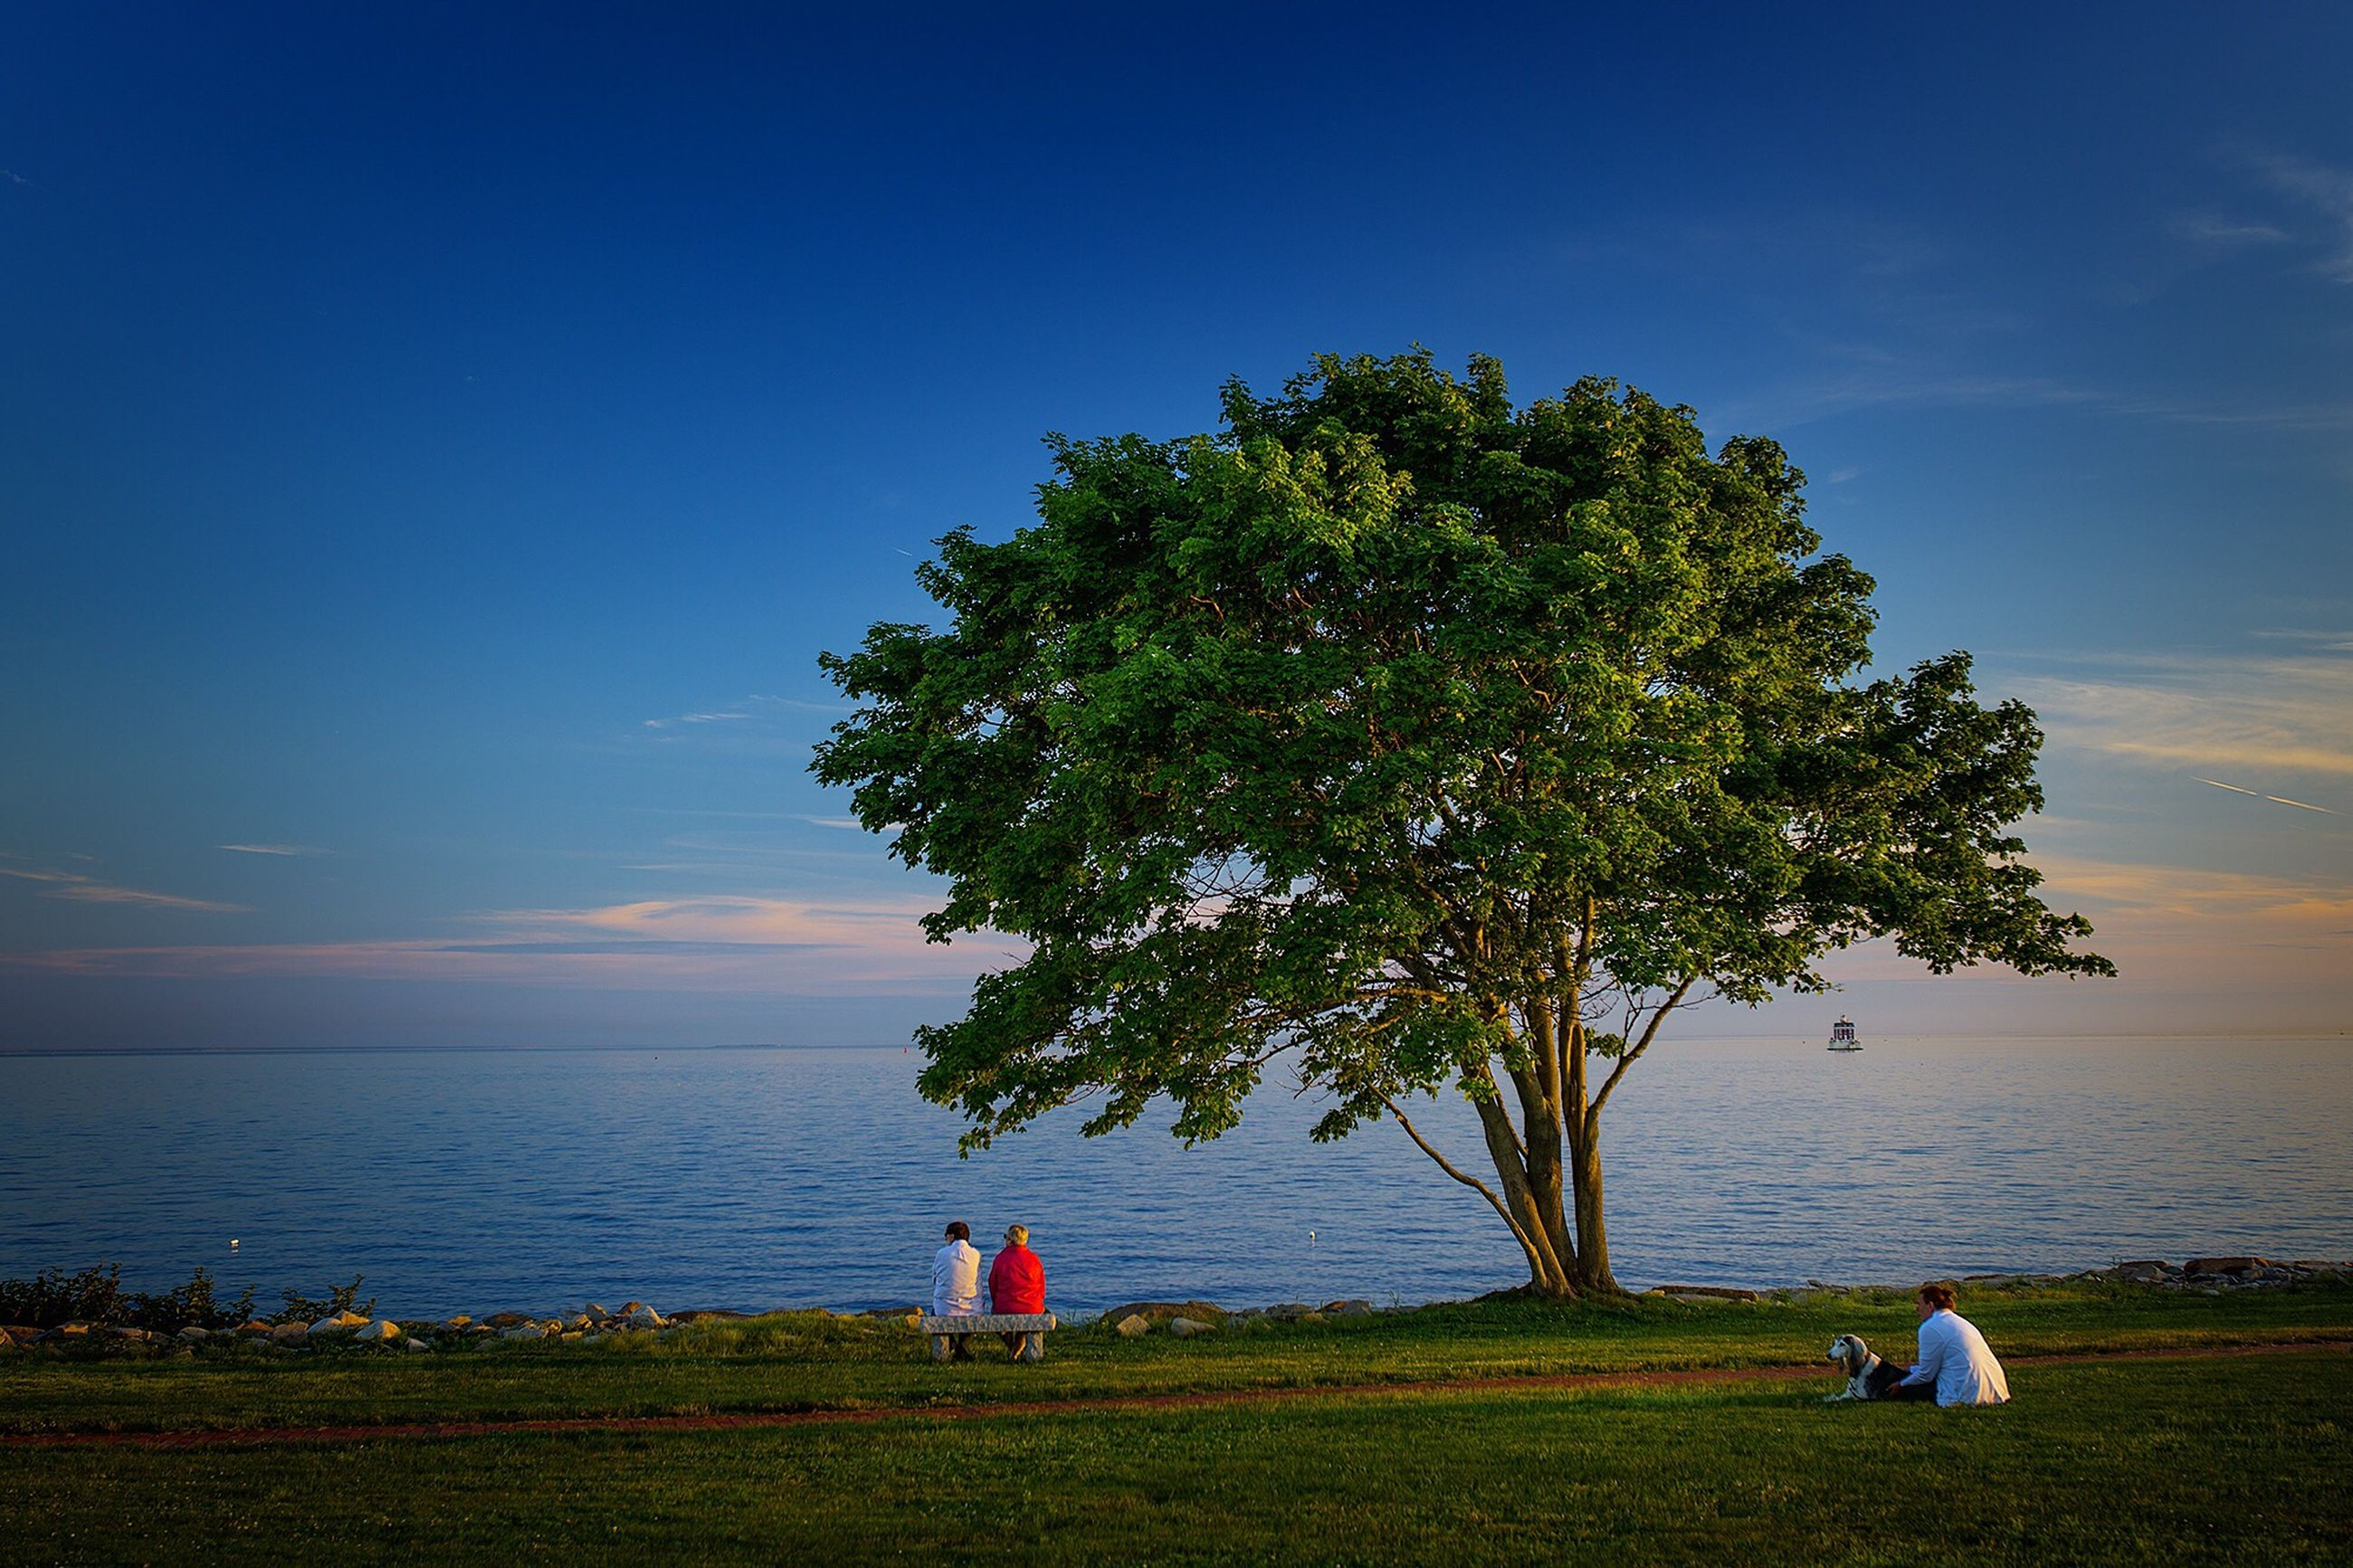 tranquility, tranquil scene, horizon over water, water, sea, scenics, sky, beauty in nature, tree, nature, beach, grass, idyllic, shore, blue, growth, calm, remote, outdoors